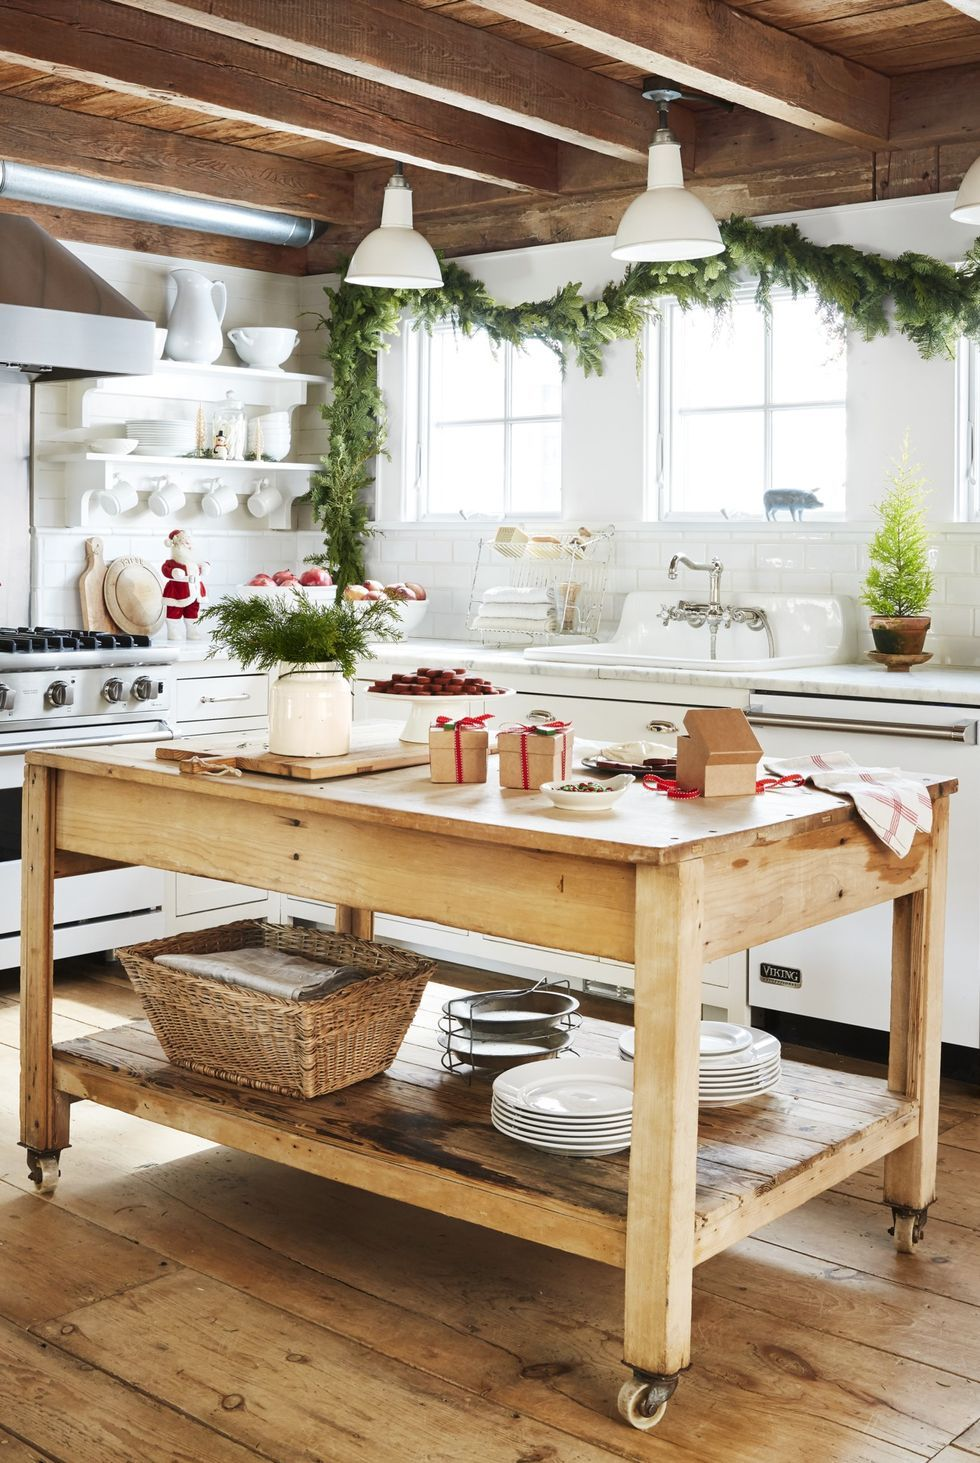 Charming Kitchen Island Ideas That Are Both Stylish and ...